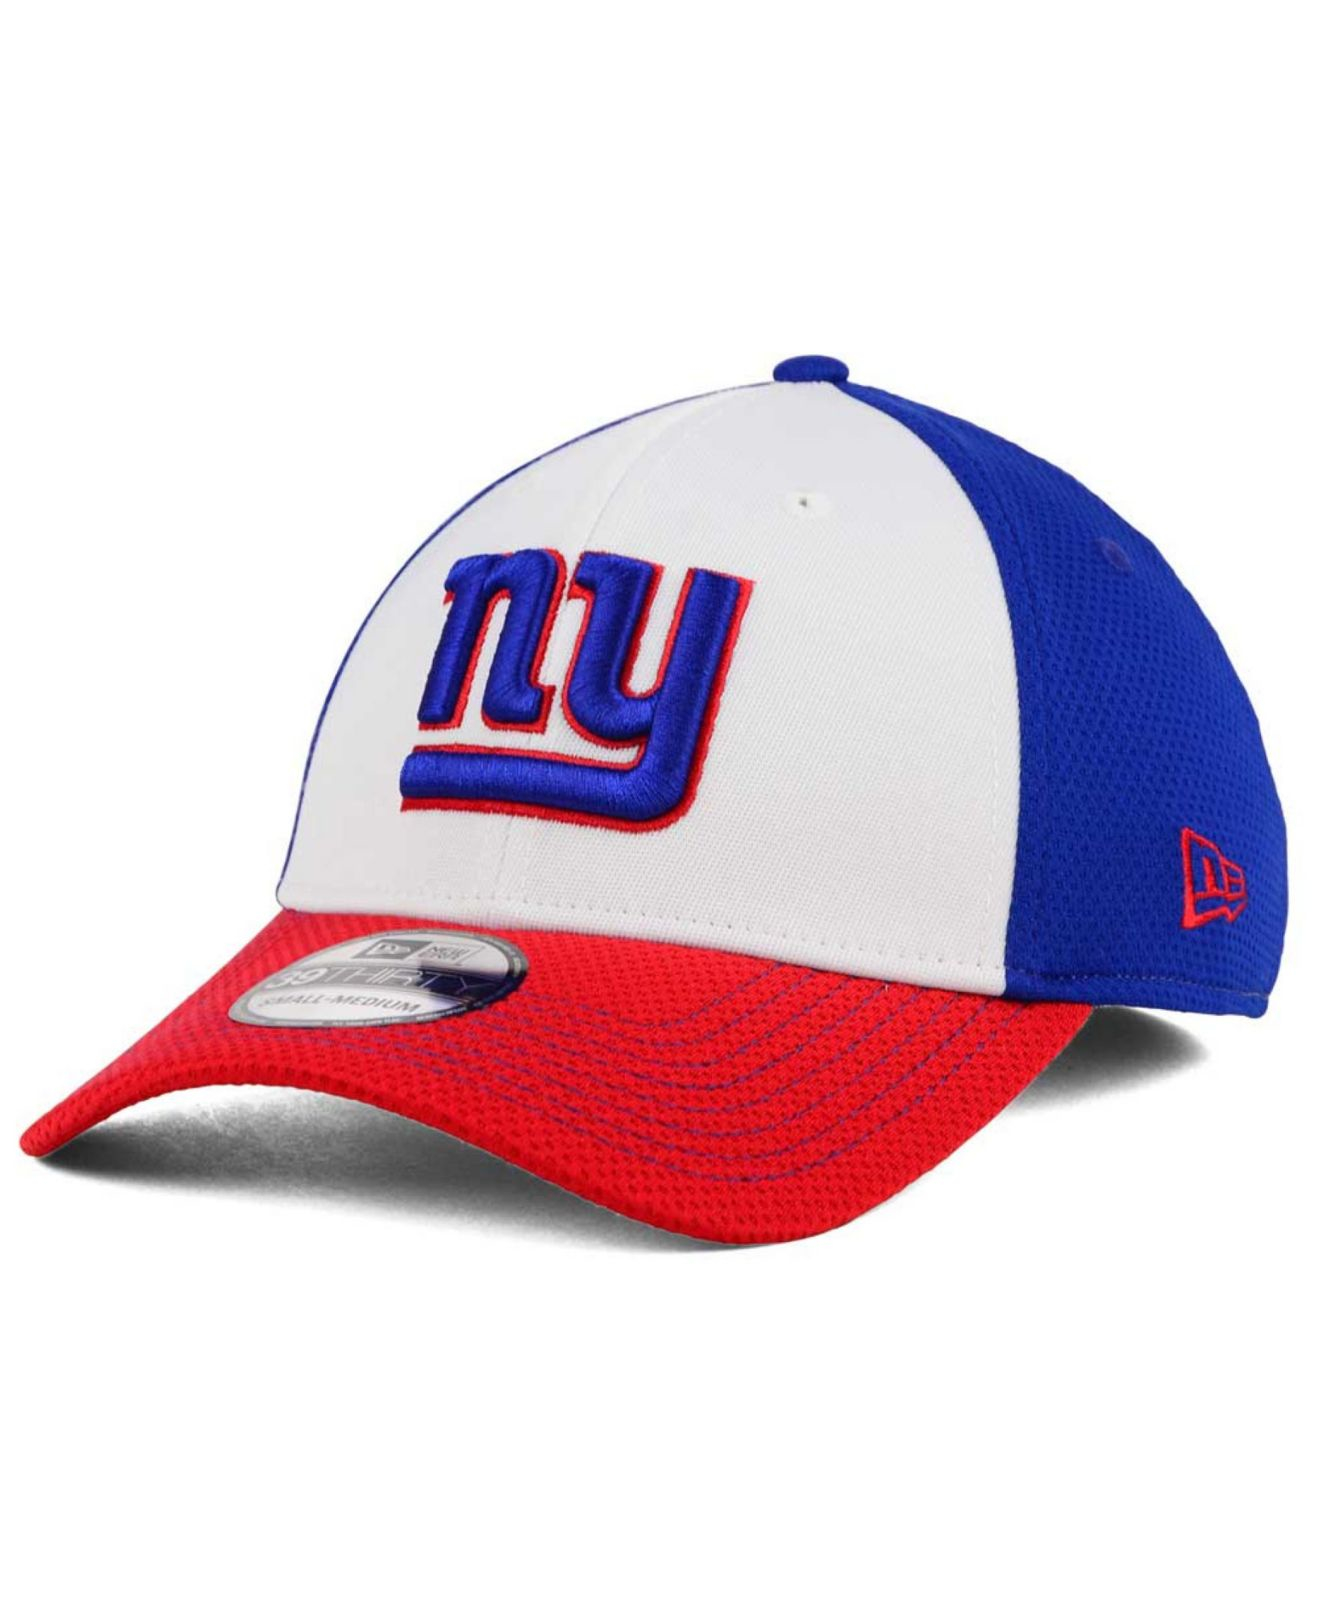 7581cd747a5 new-era-royalblue-new-york-giants-chase-white-front-mesh-39thirty-cap -product-1-505586234-normal.jpeg